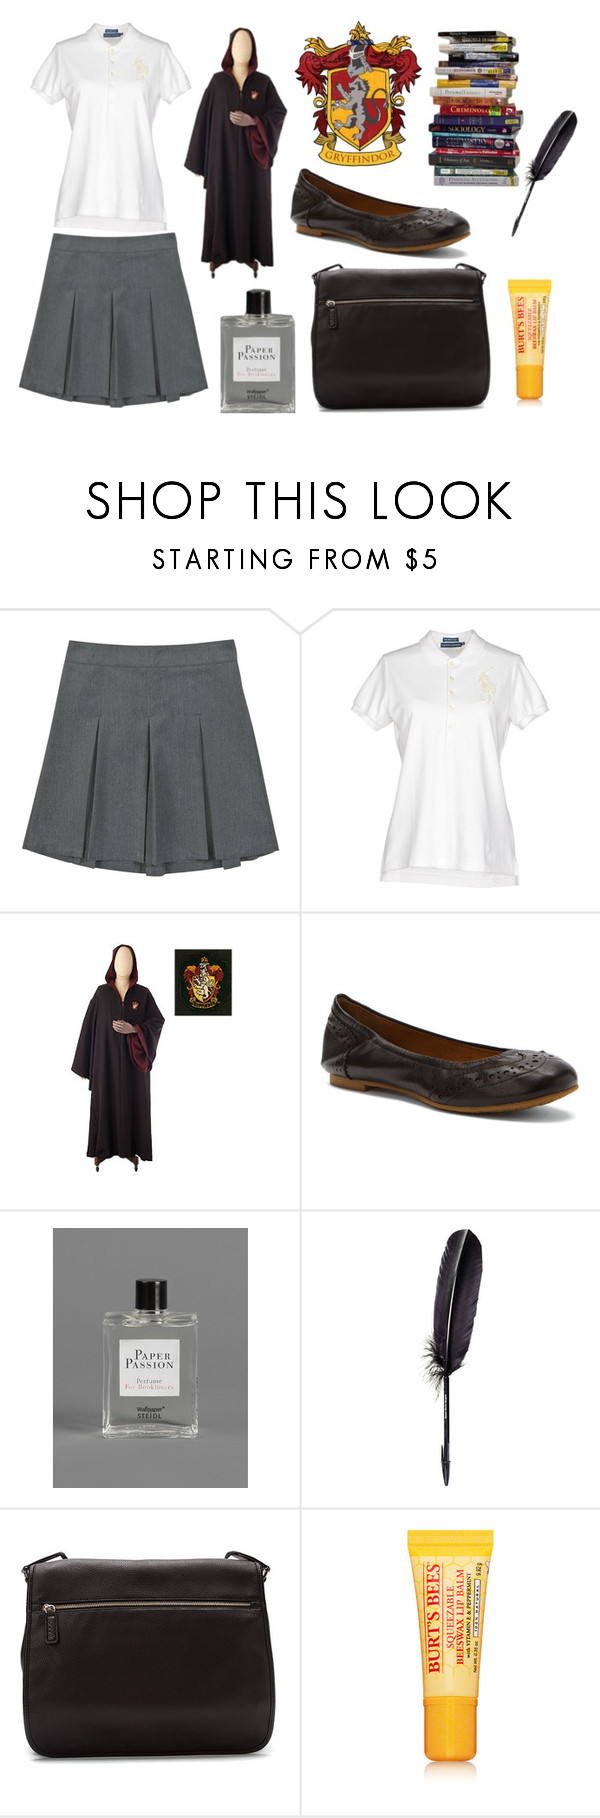 """""""Hermione's Outfit"""" by acciopotterbook ❤ liked on Polyvore featuring moda, Ralph Lauren, Juil, Escentric Molecules, Maison Margiela, ECCO, Burt's Bees, school, hogwarts e HermioneGranger"""